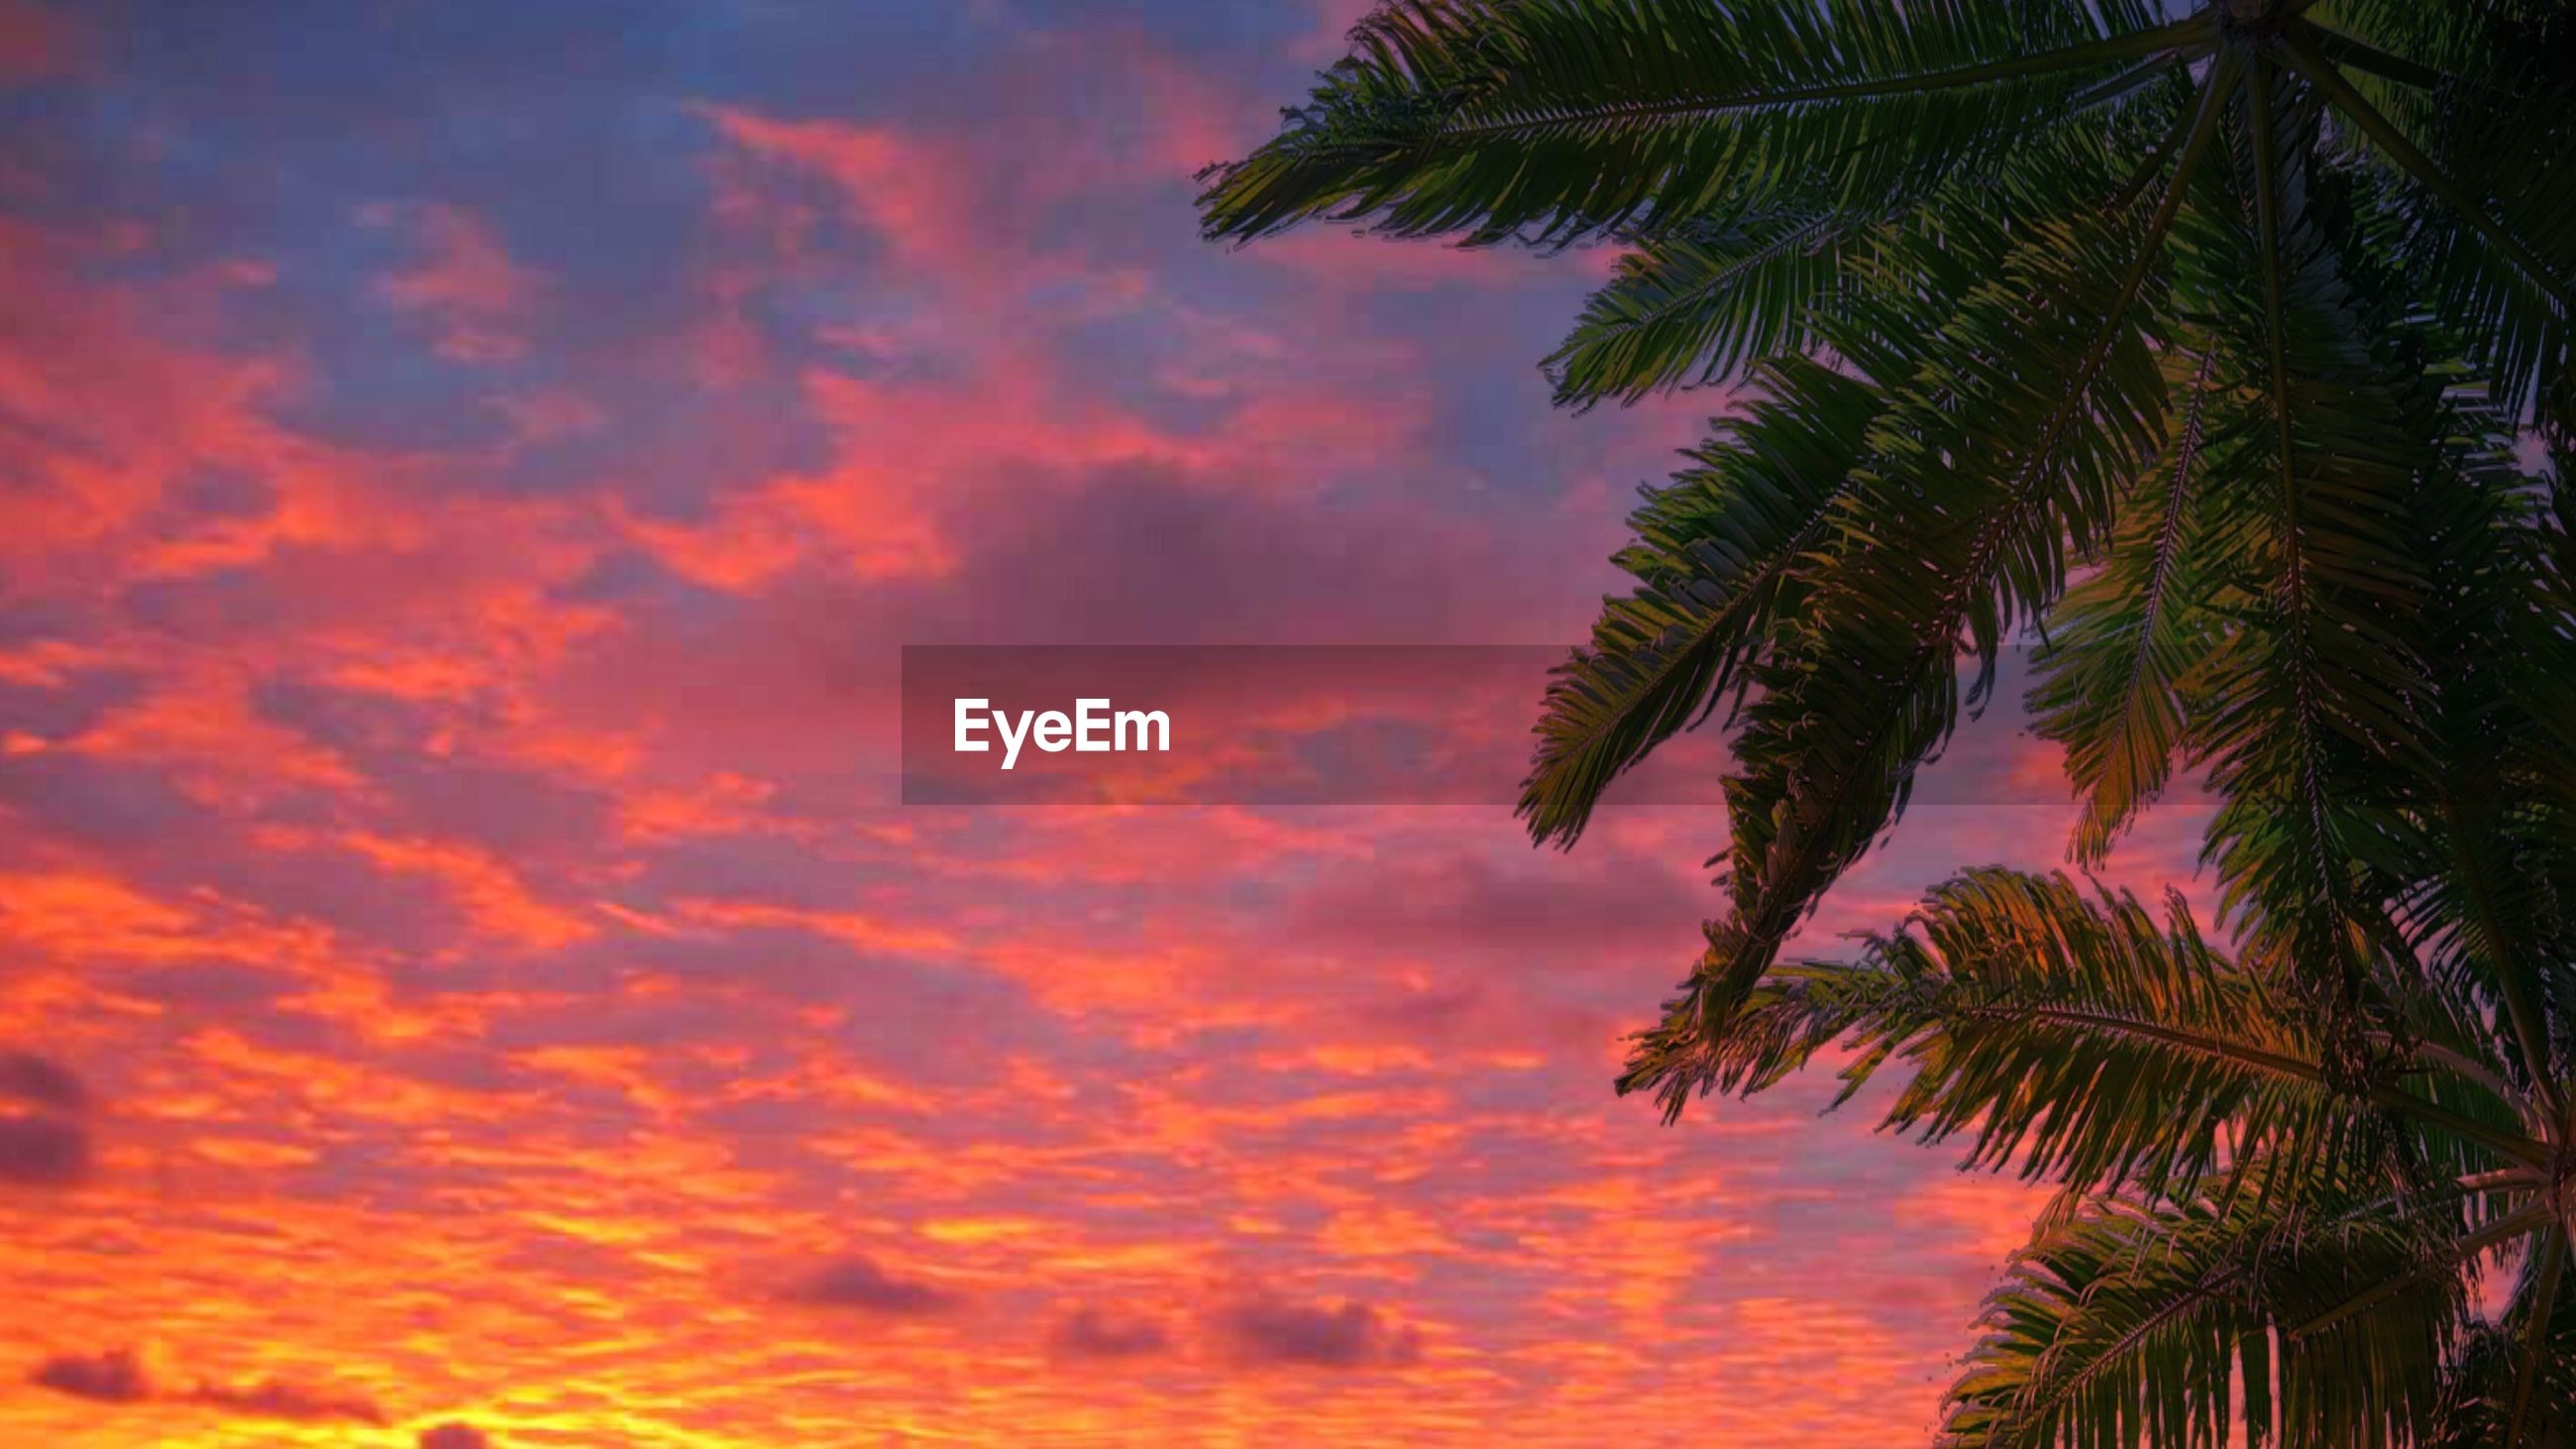 LOW ANGLE VIEW OF PALM TREES AGAINST ORANGE SKY